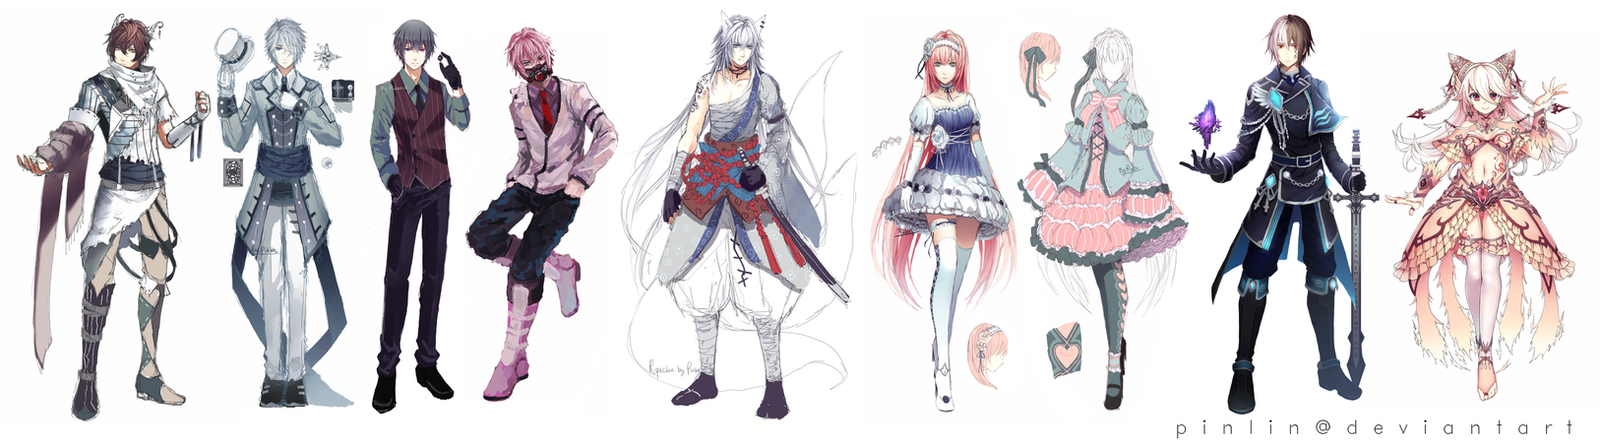 The Art Of Character Design Volume I : Character designs by pinlin on deviantart